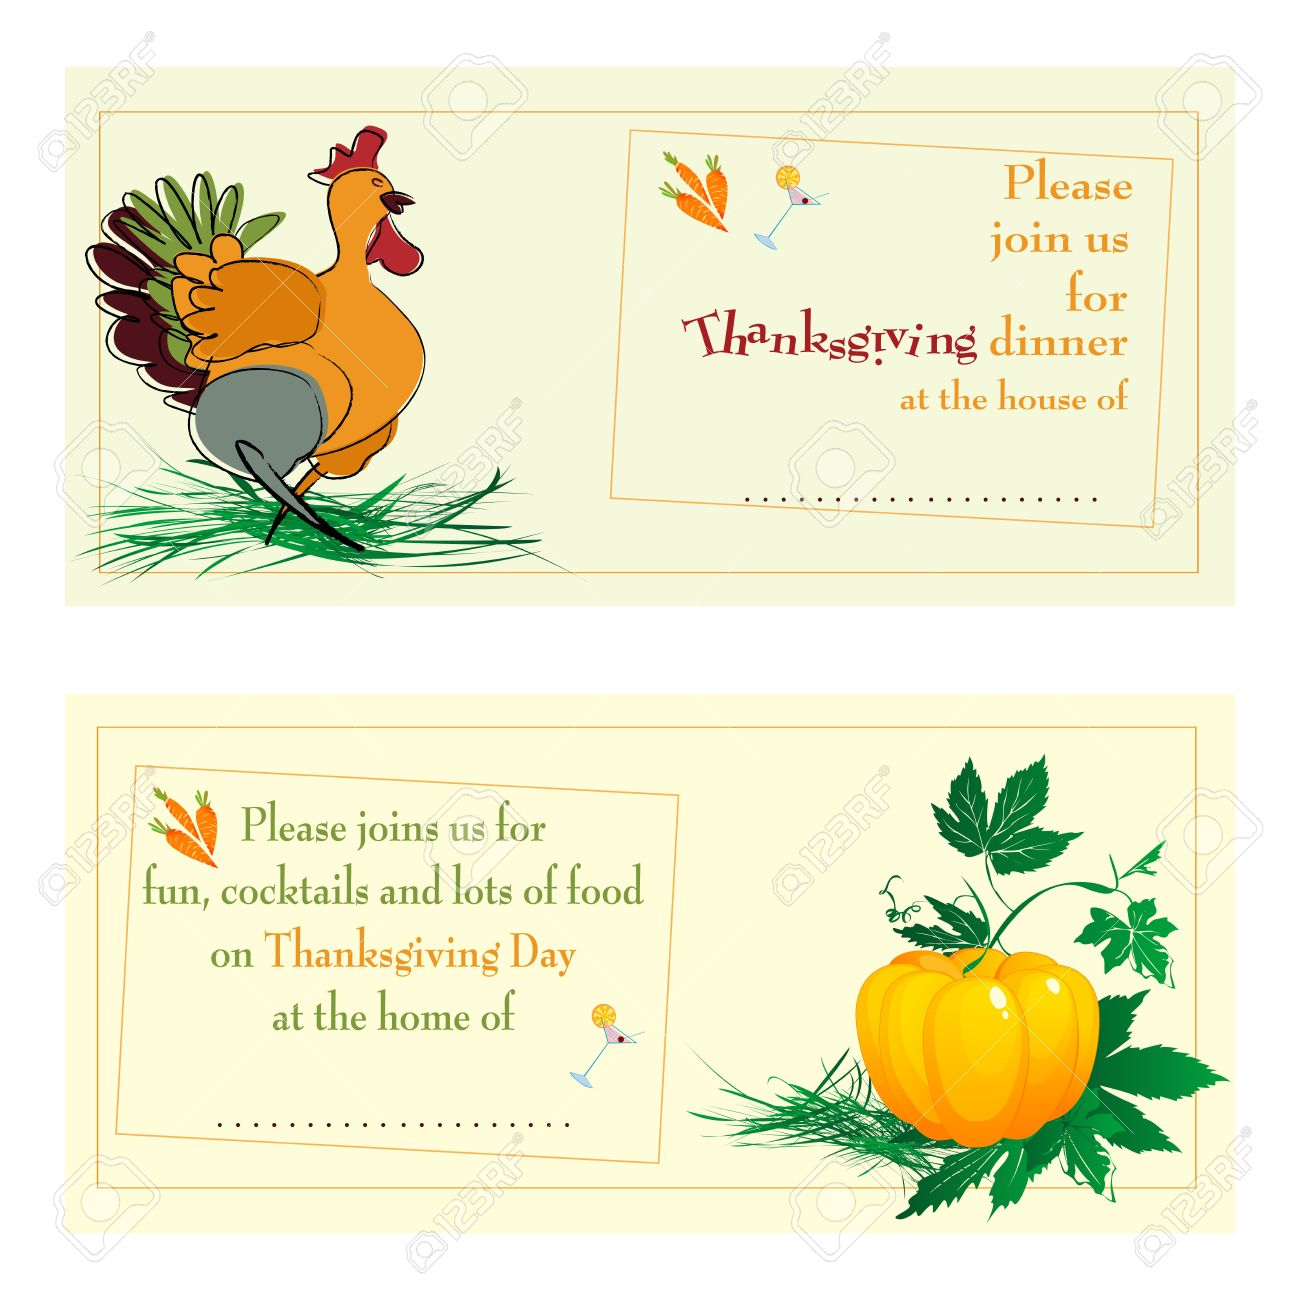 thanksgiving day dinner invitations against white background royalty